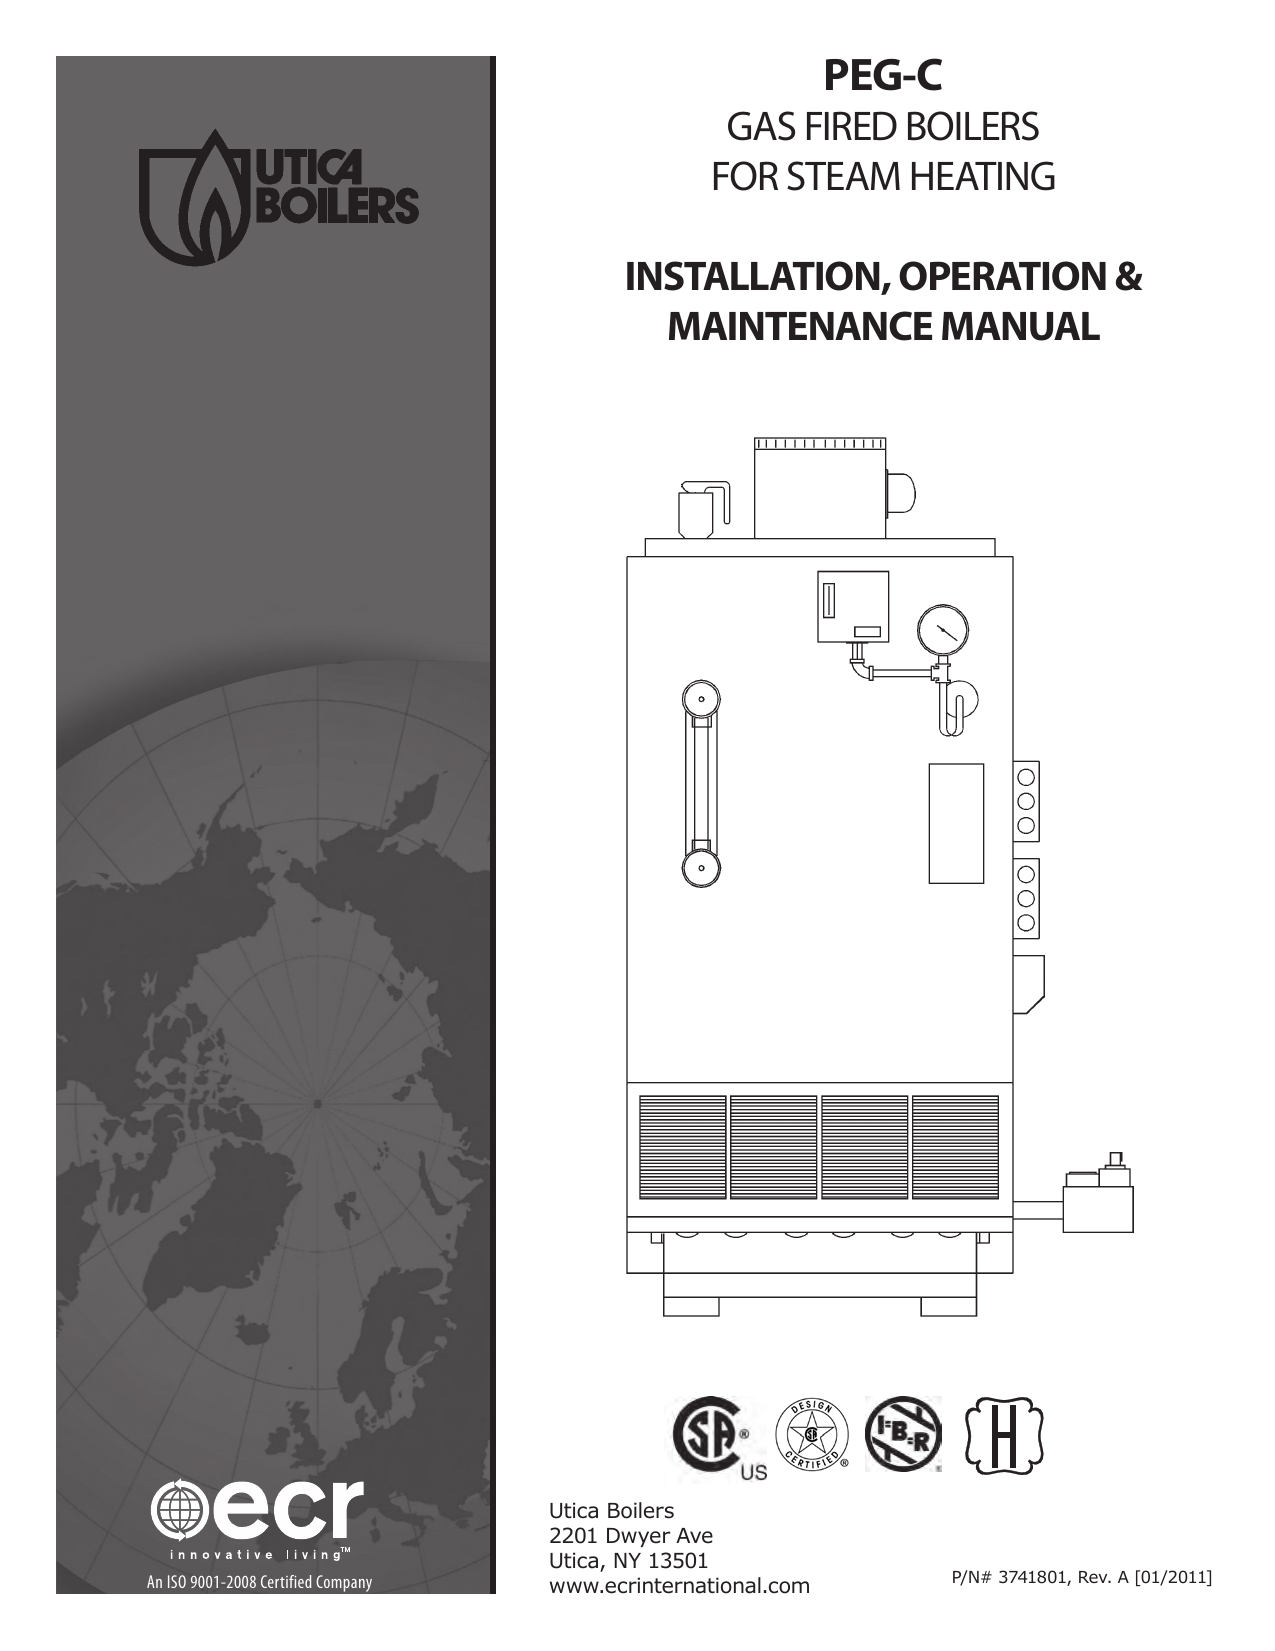 GAS FIRED BOILERS FOR STEAM HEATING INSTALLATION on utica boiler parts, utica boiler system, utica boiler installation, a.o. smith wiring diagram, utica boiler brochure, utica boiler controls,